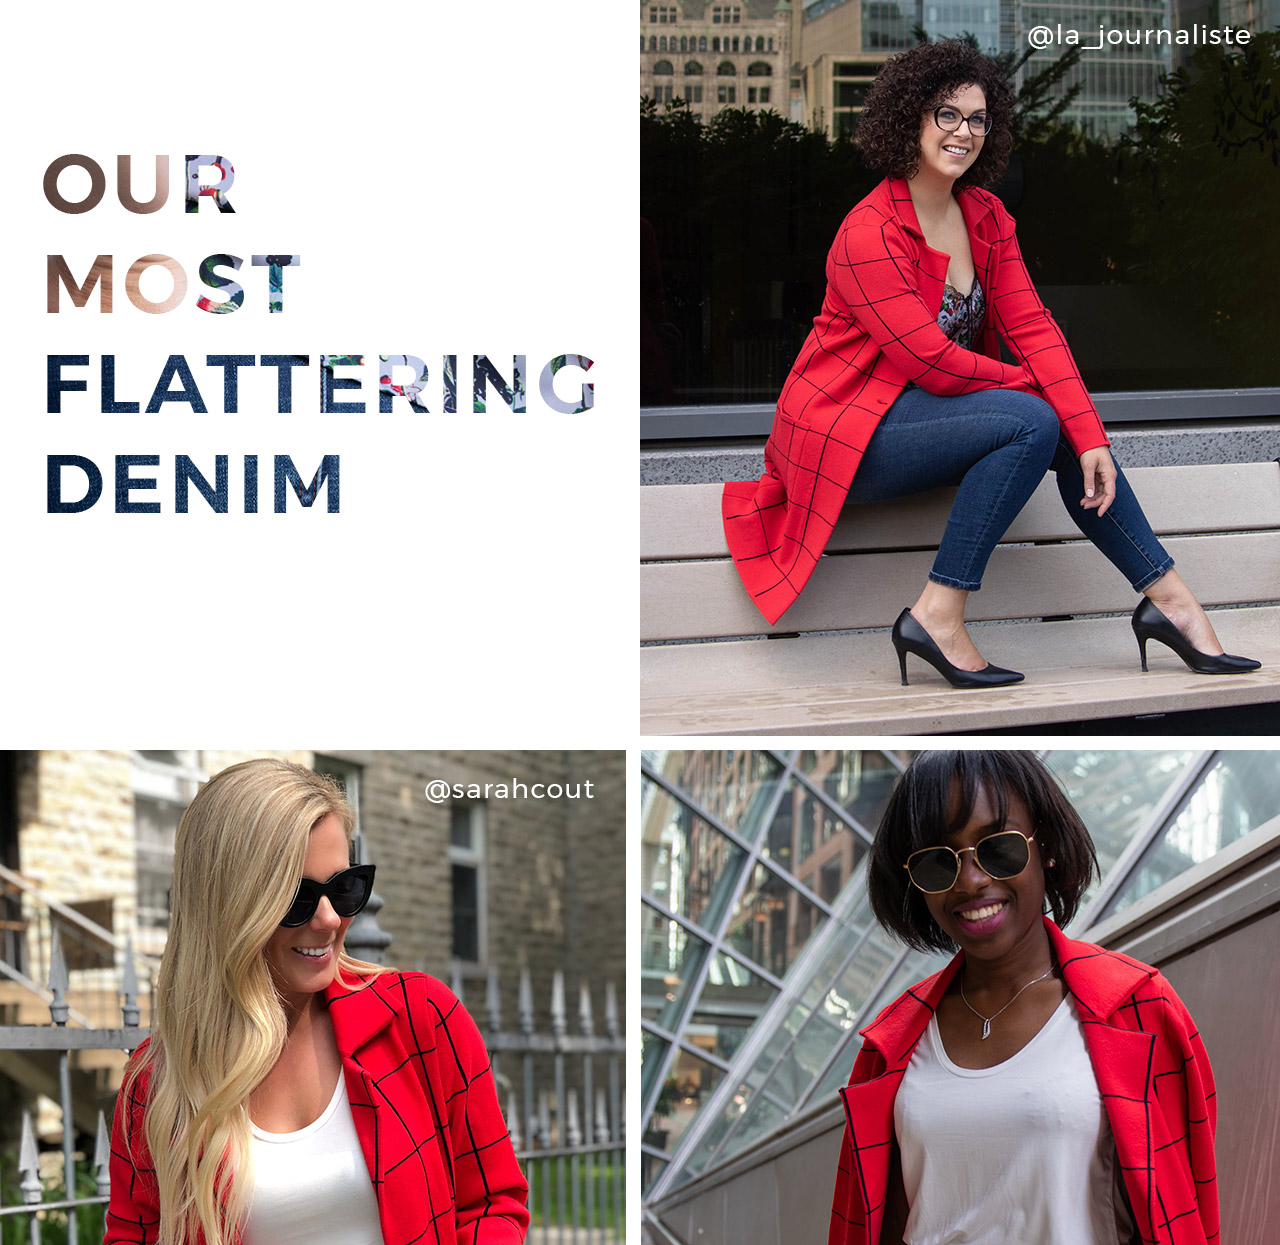 Our most flattering denim